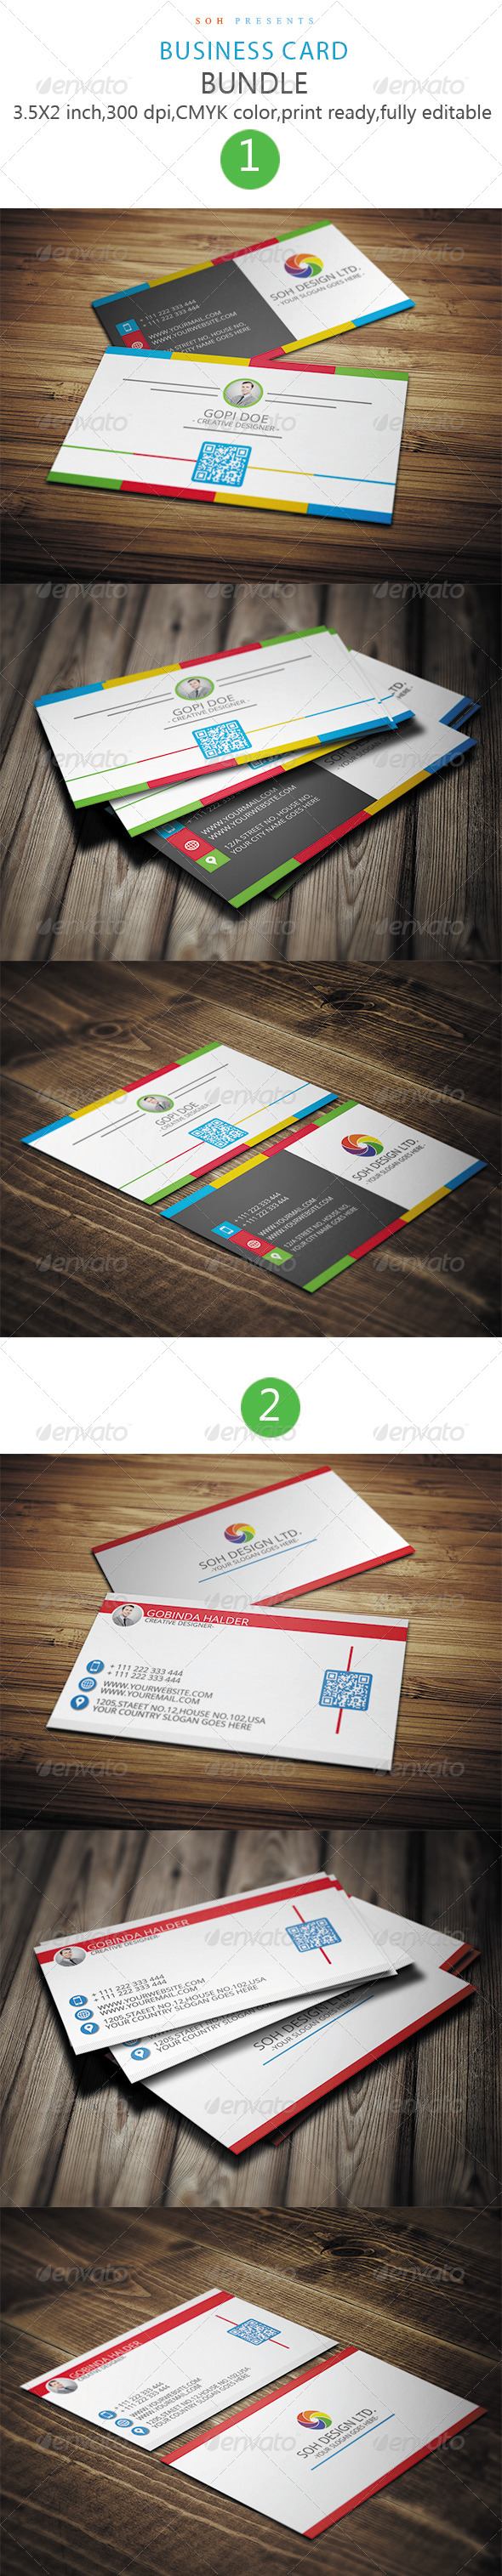 GraphicRiver Business Card Bundle 8771624